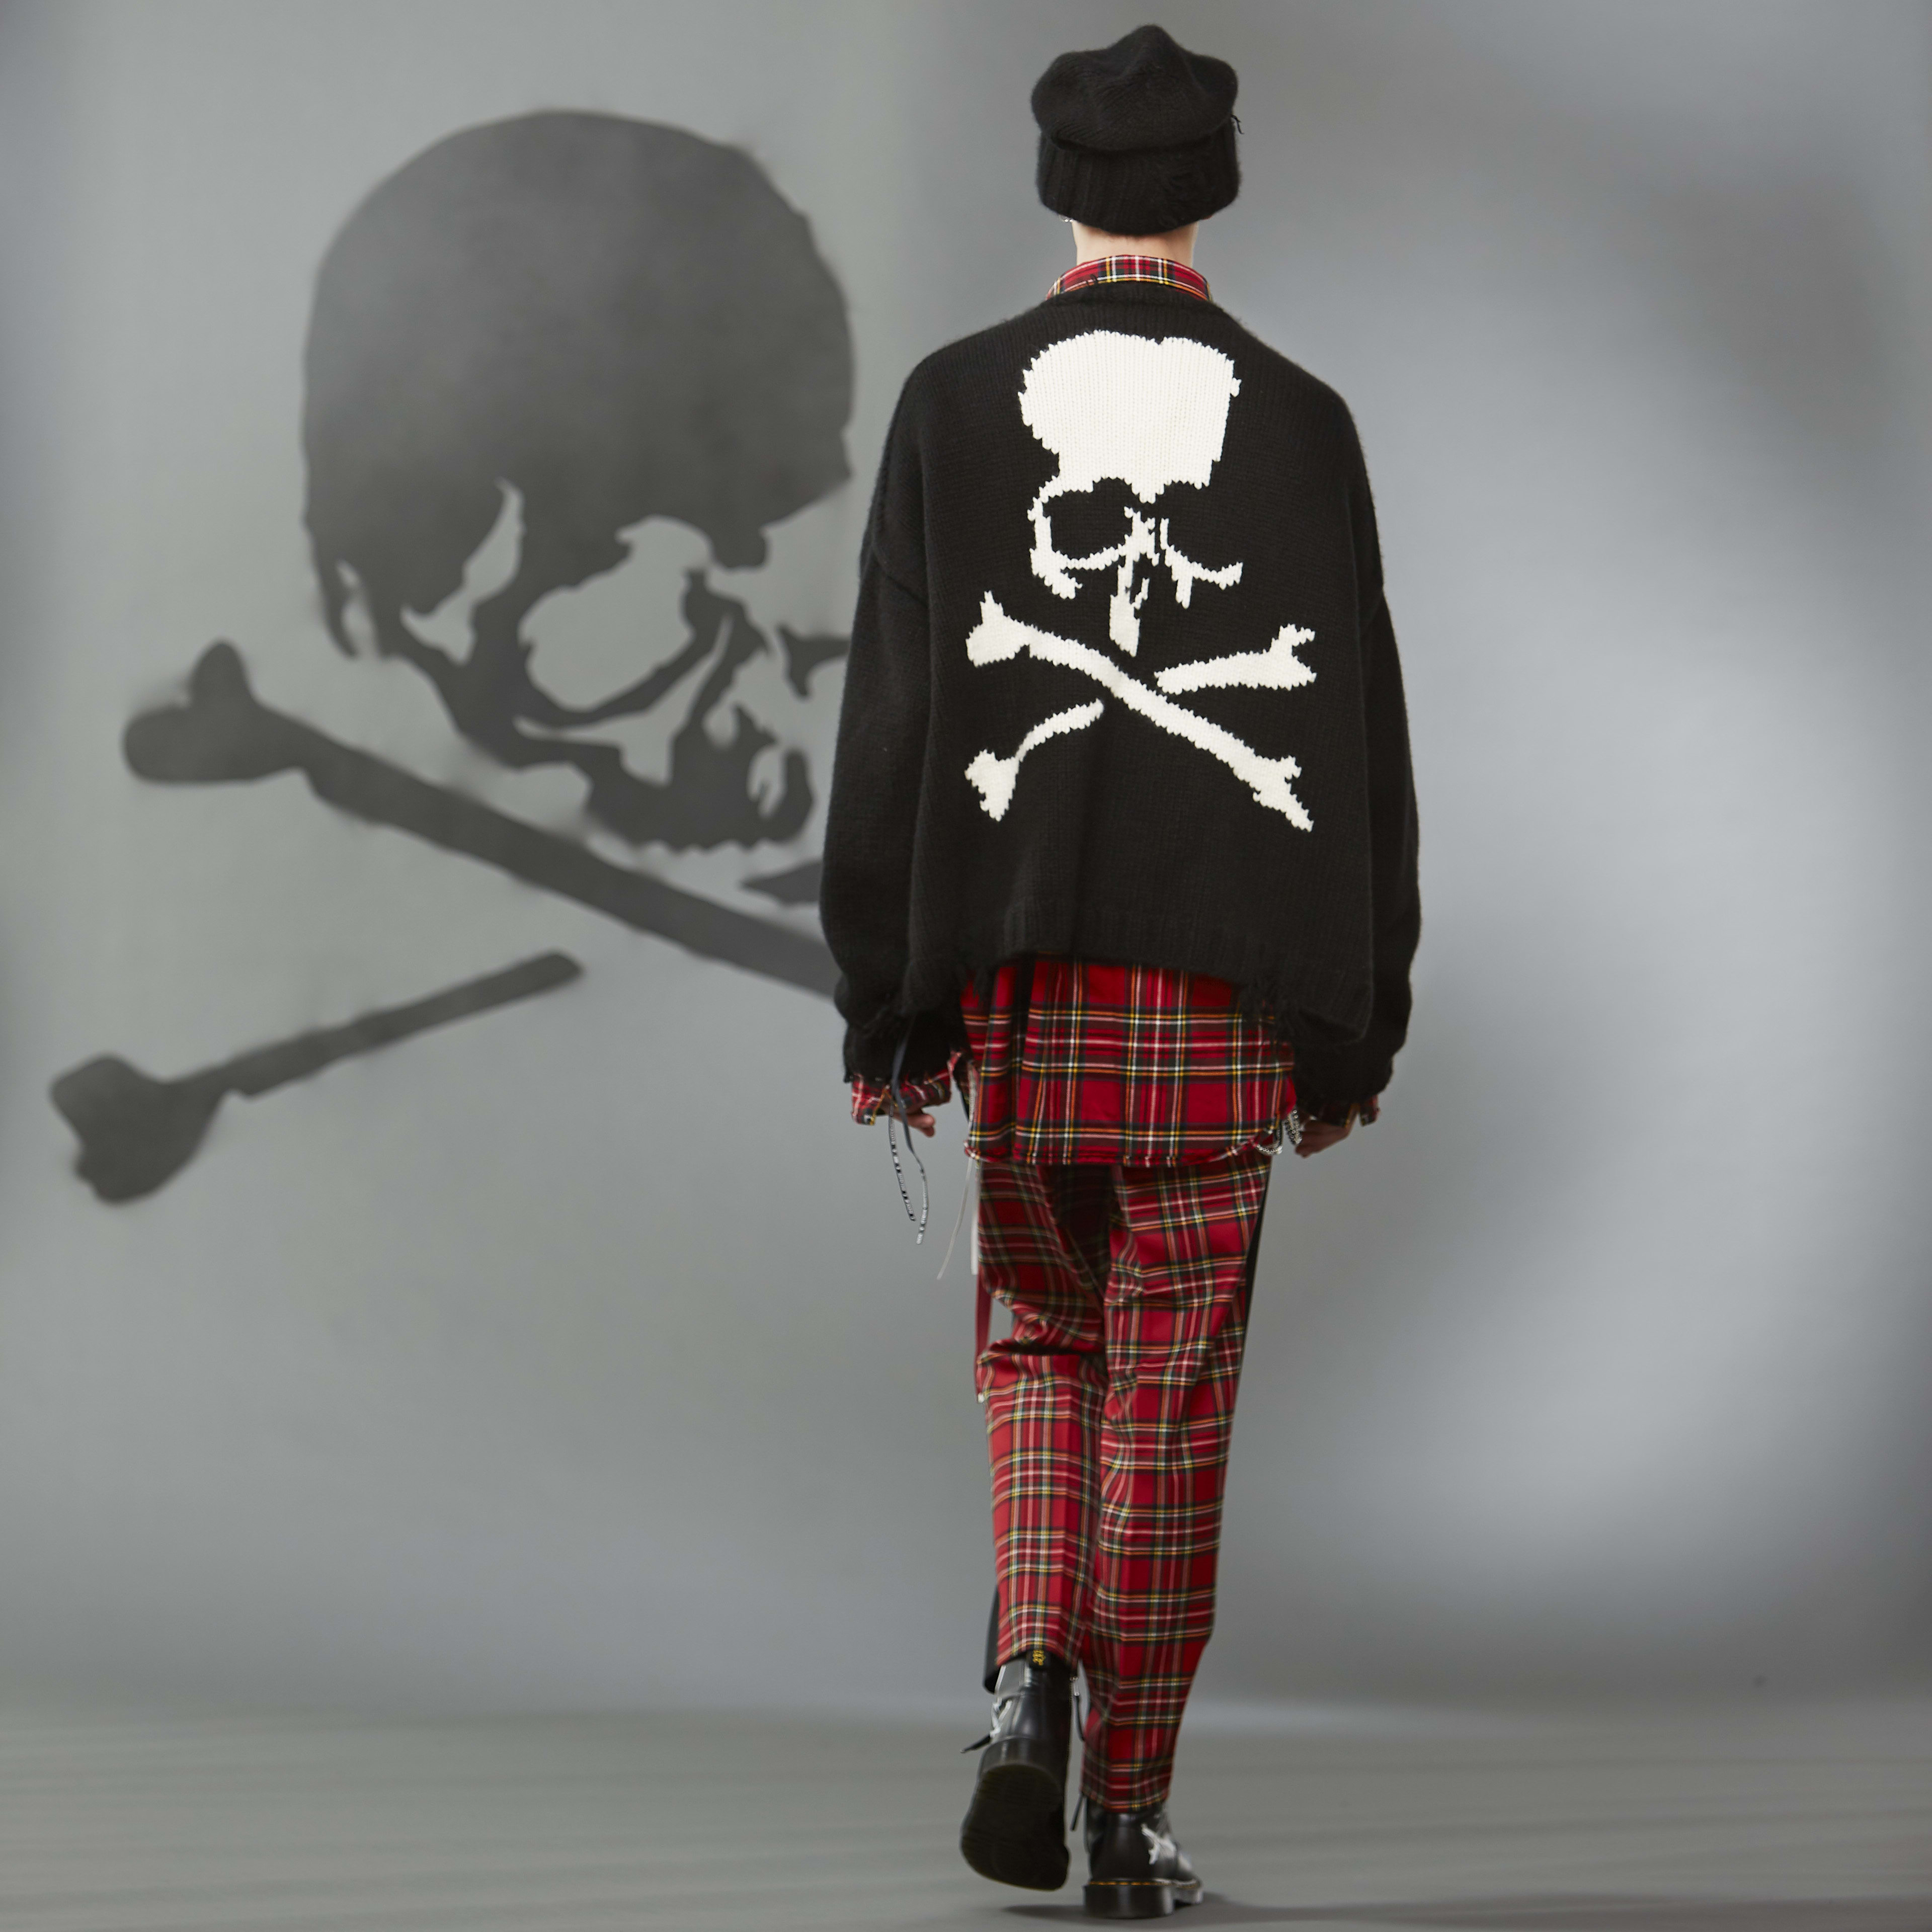 MASTERMIND WORLD FW19 look book presentation with tartan trousers